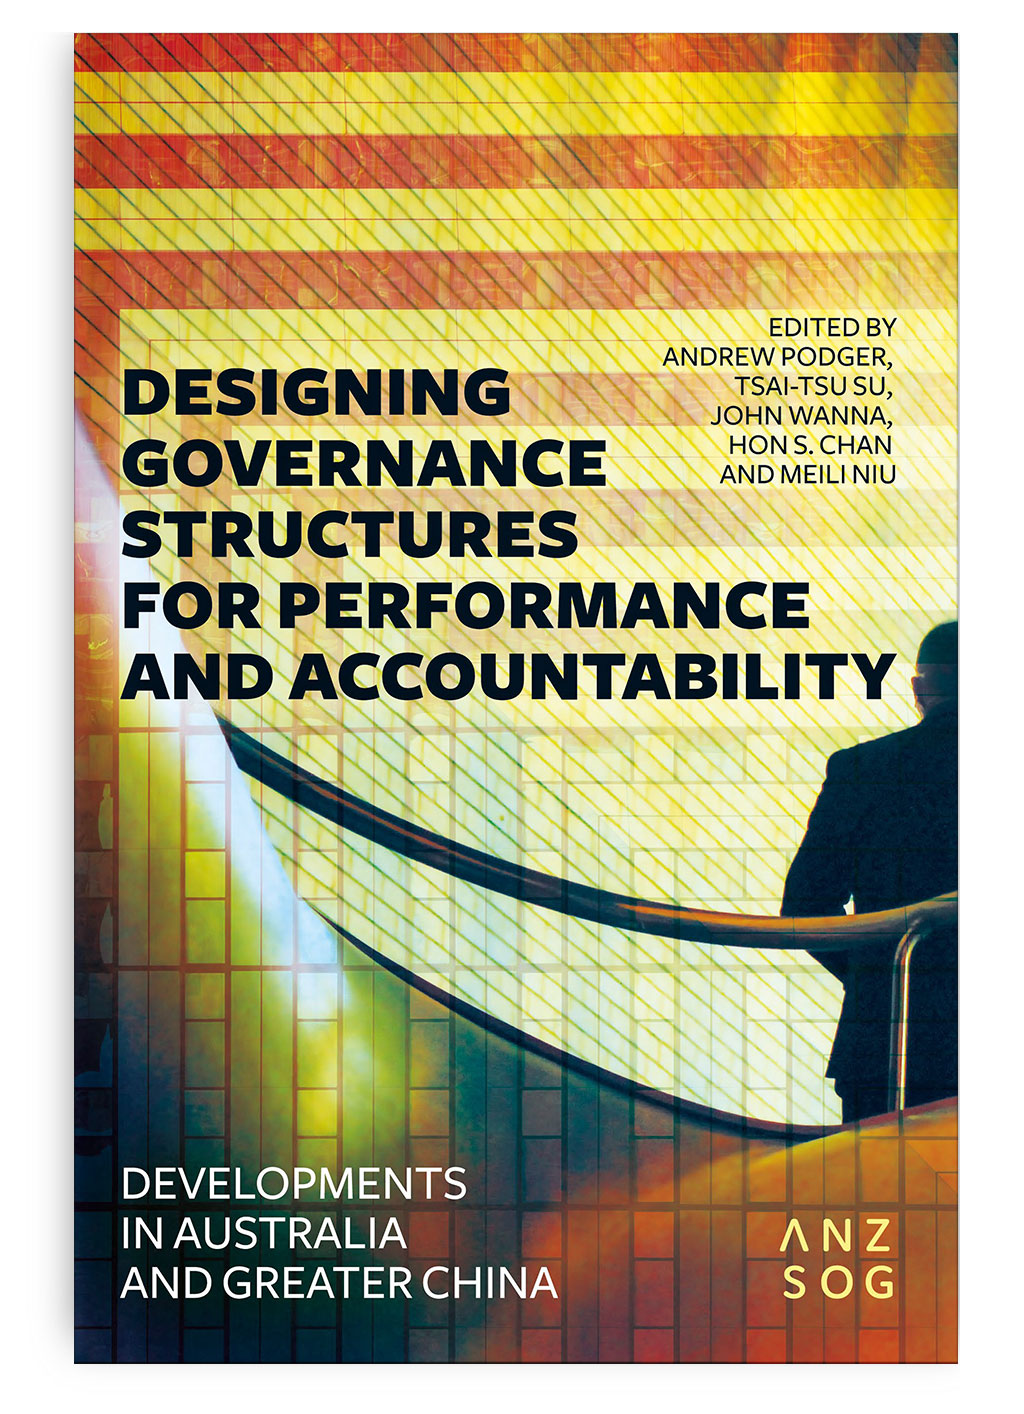 Designing Governance Structures for Performance and Accountability